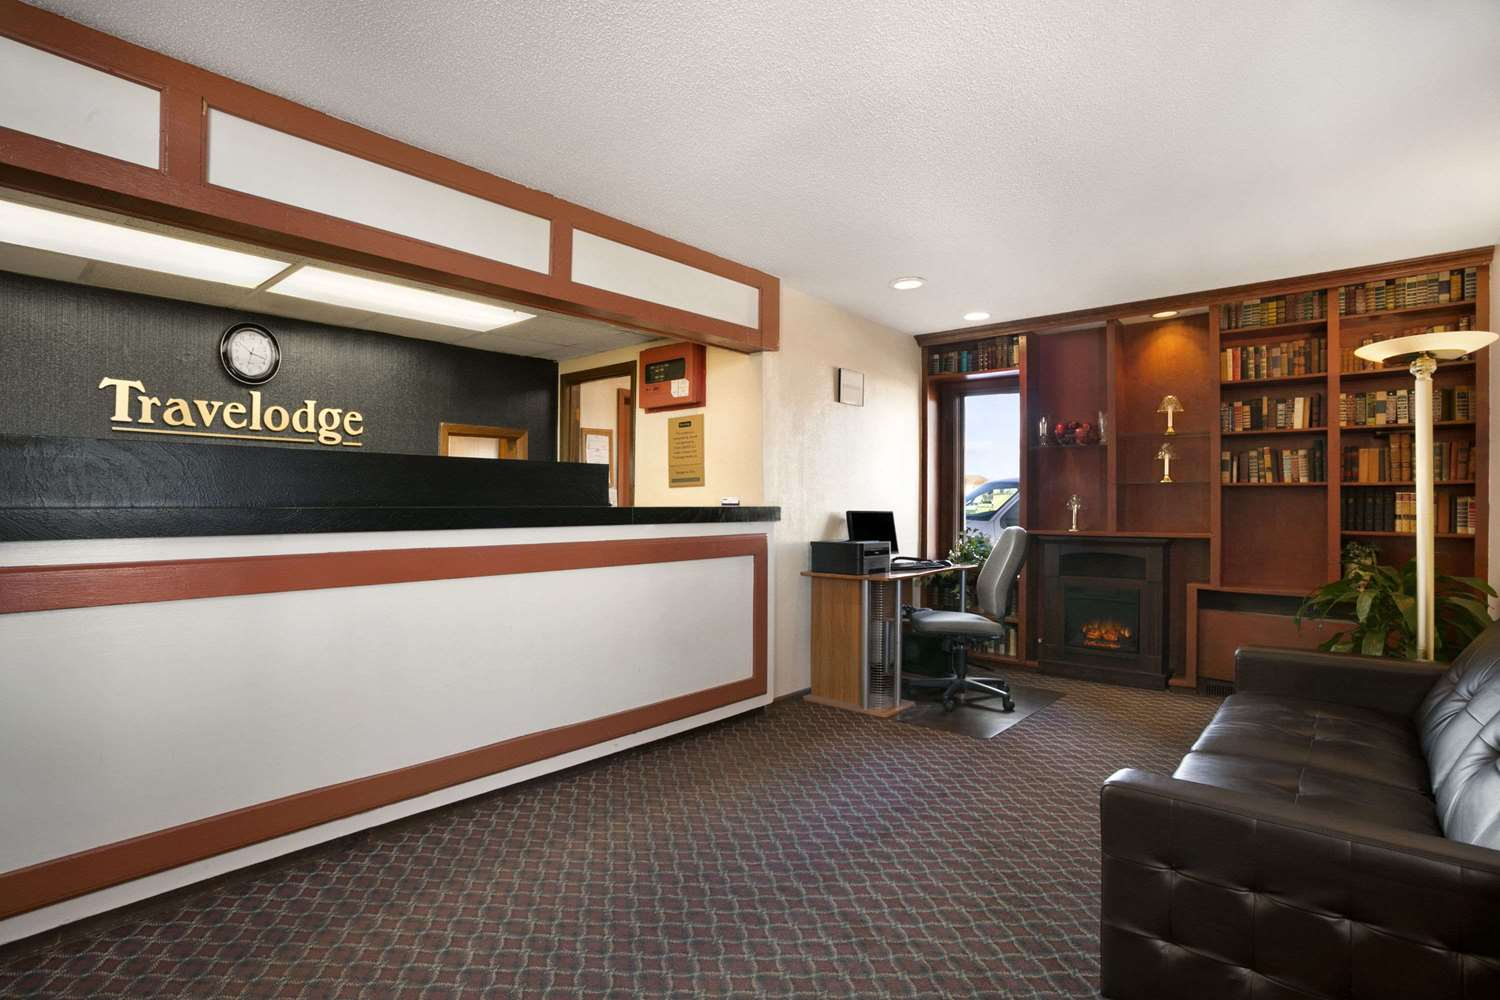 Lobby - Travelodge Inn & Suites Muscatine